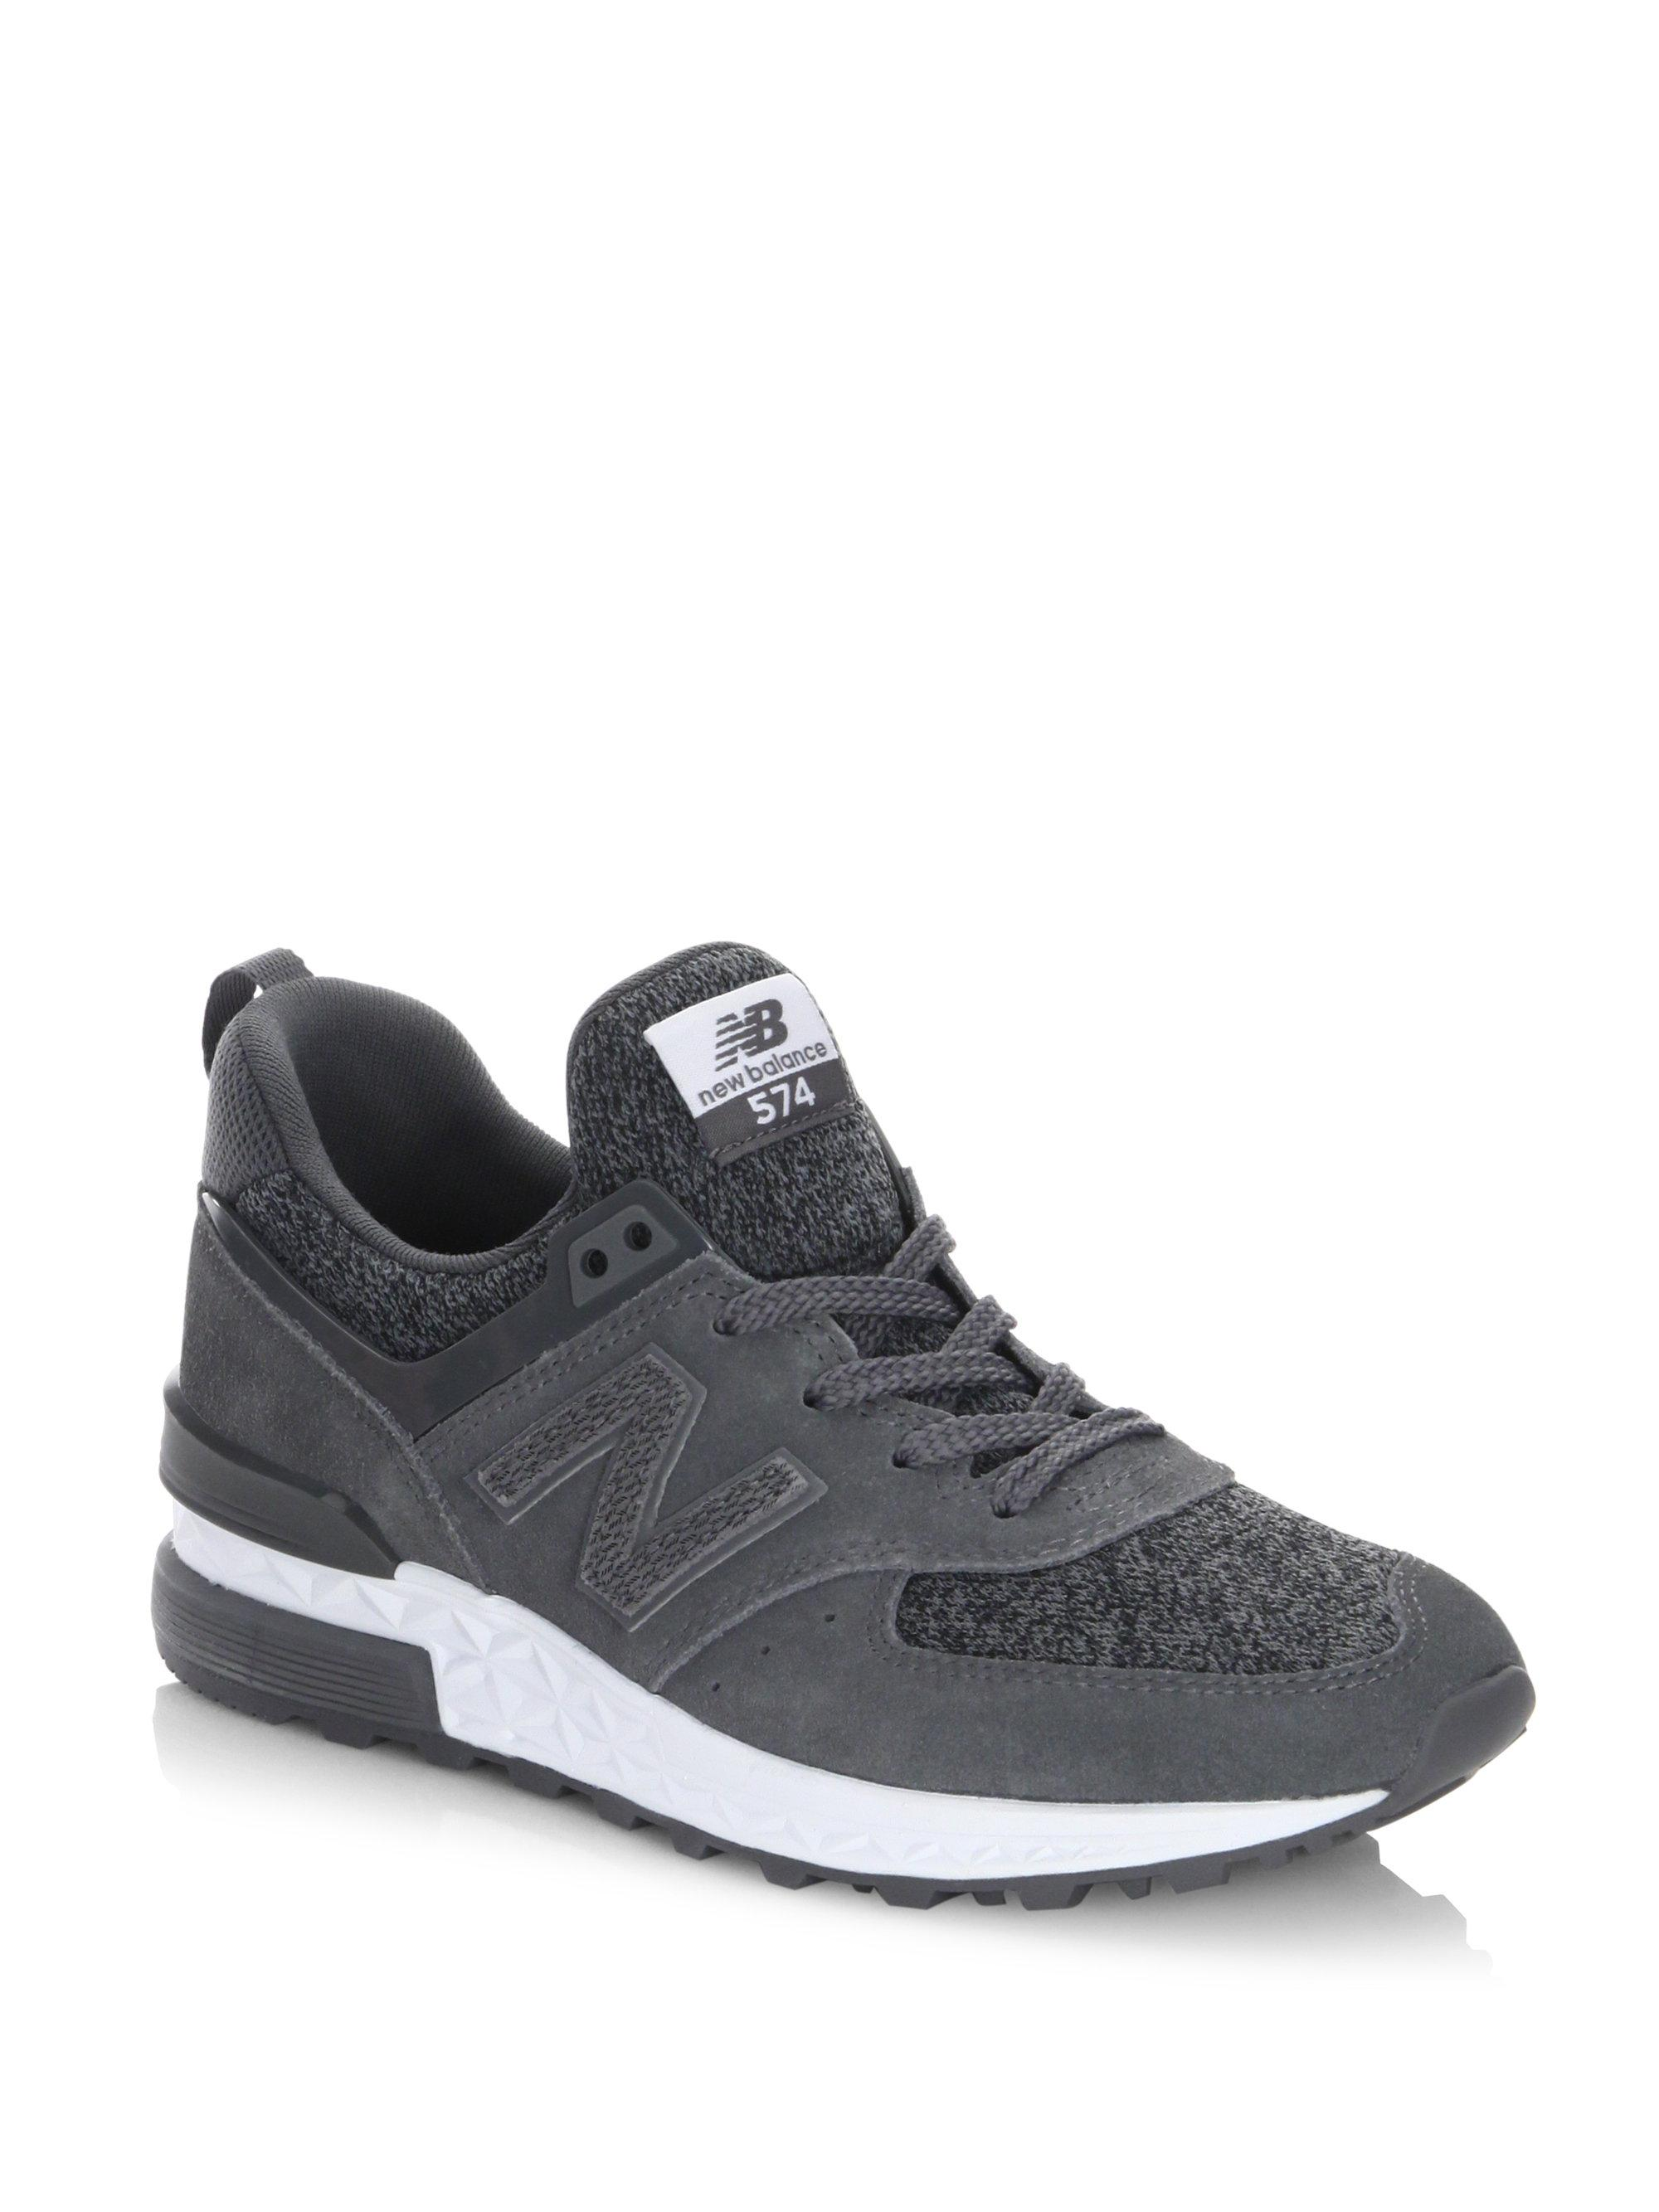 new arrival a5bb0 be909 New Balance Suede 547 Sport Sneakers in Grey (Gray) - Lyst